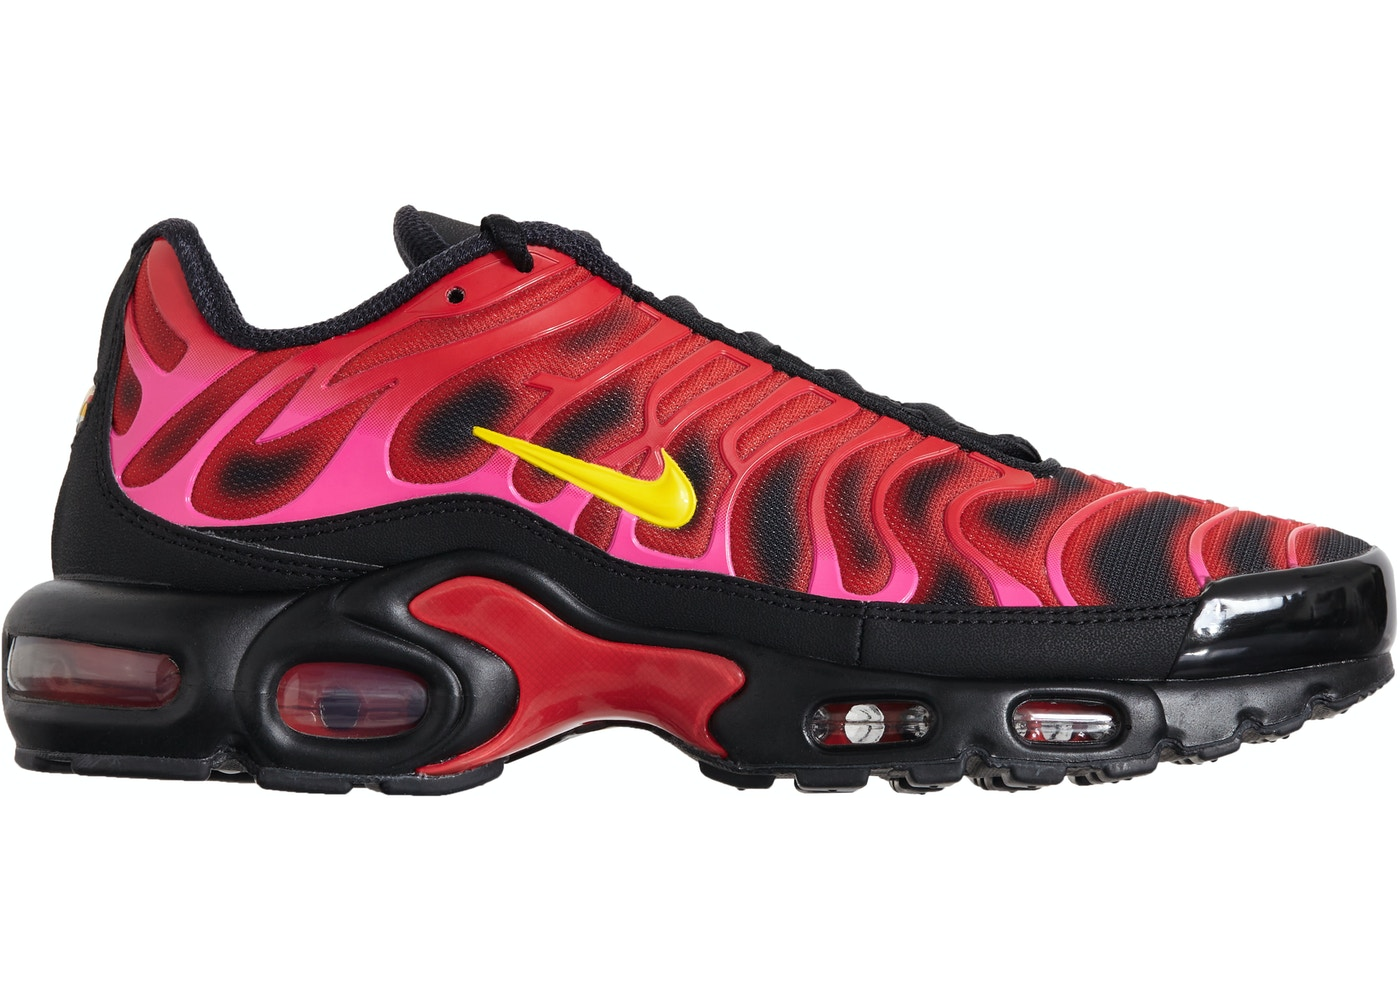 Suavemente Injusticia experiencia  Nike Air Max Plus Supreme Black - DA1472-600